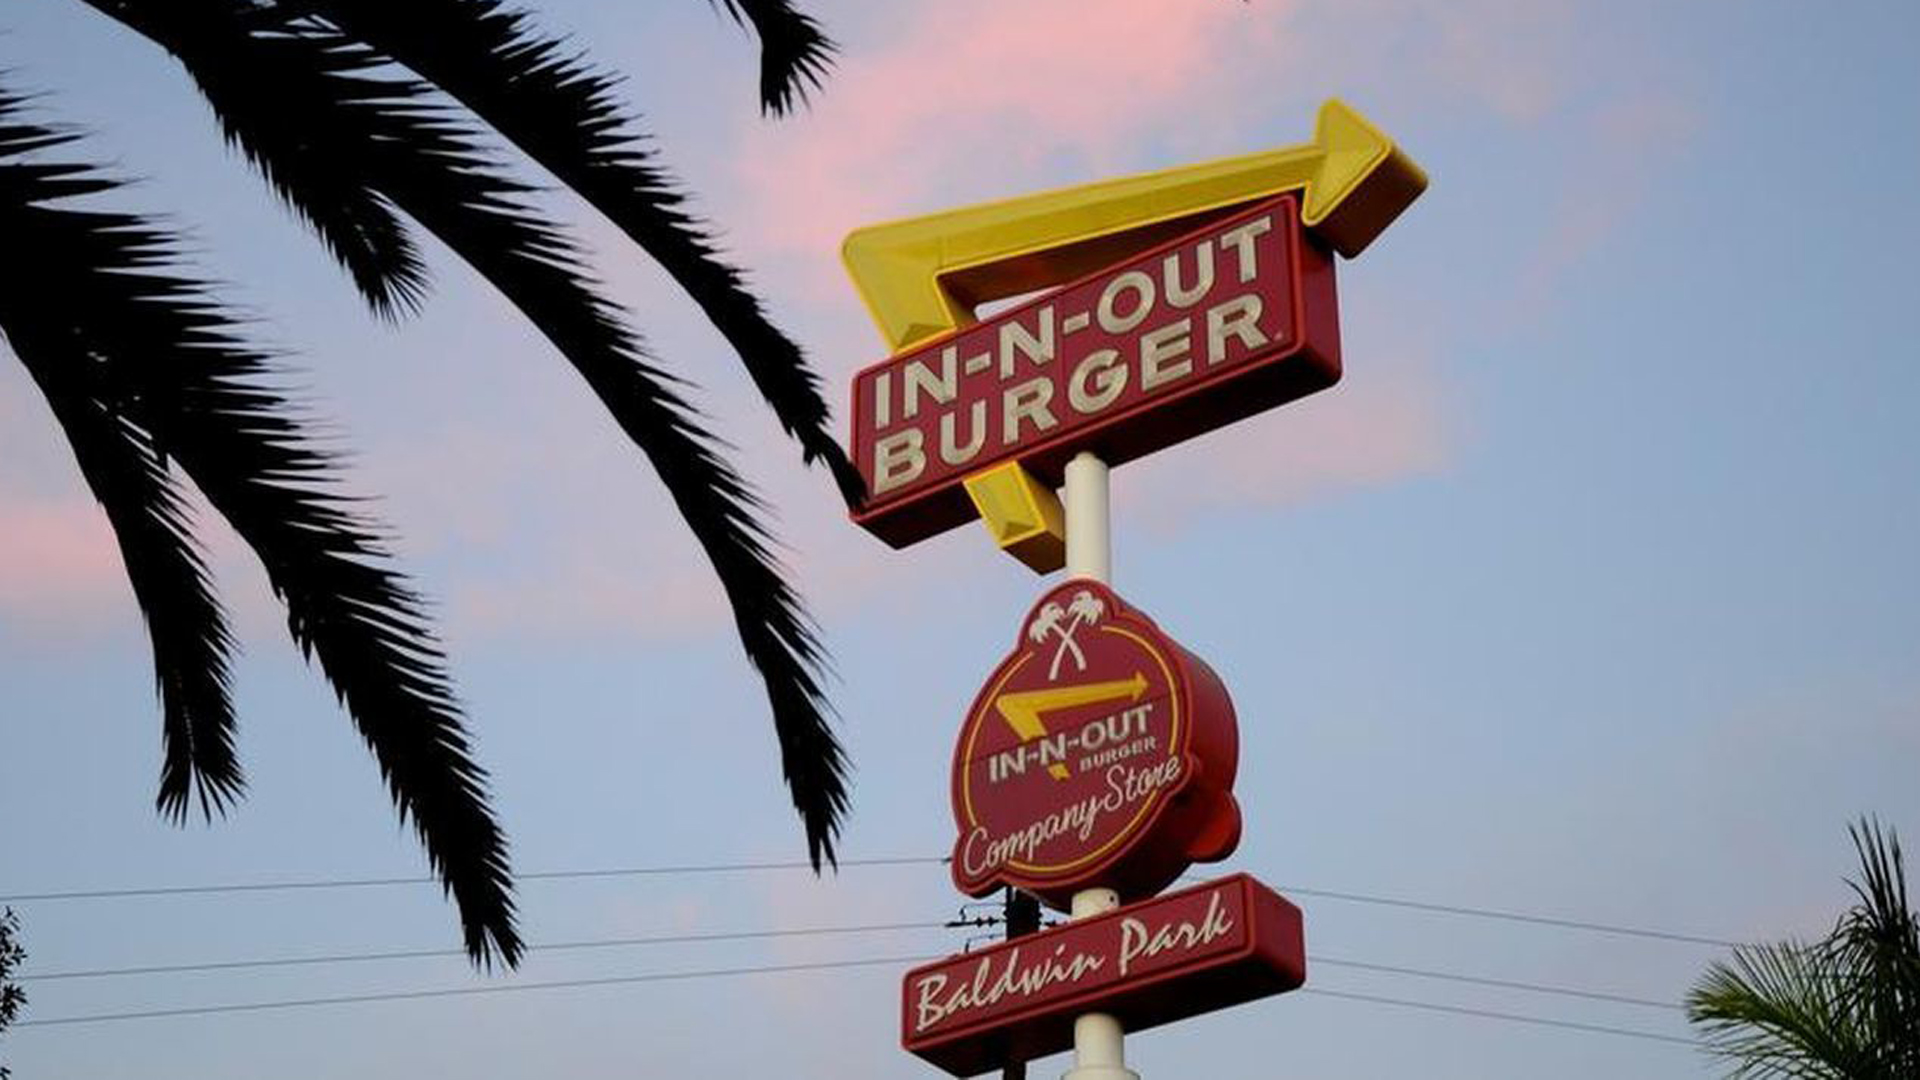 For many Californians, In-N-Out has long stood as a proud and iconic symbol of the Golden State. (Credit: Christopher Reynolds / Los Angeles Times)